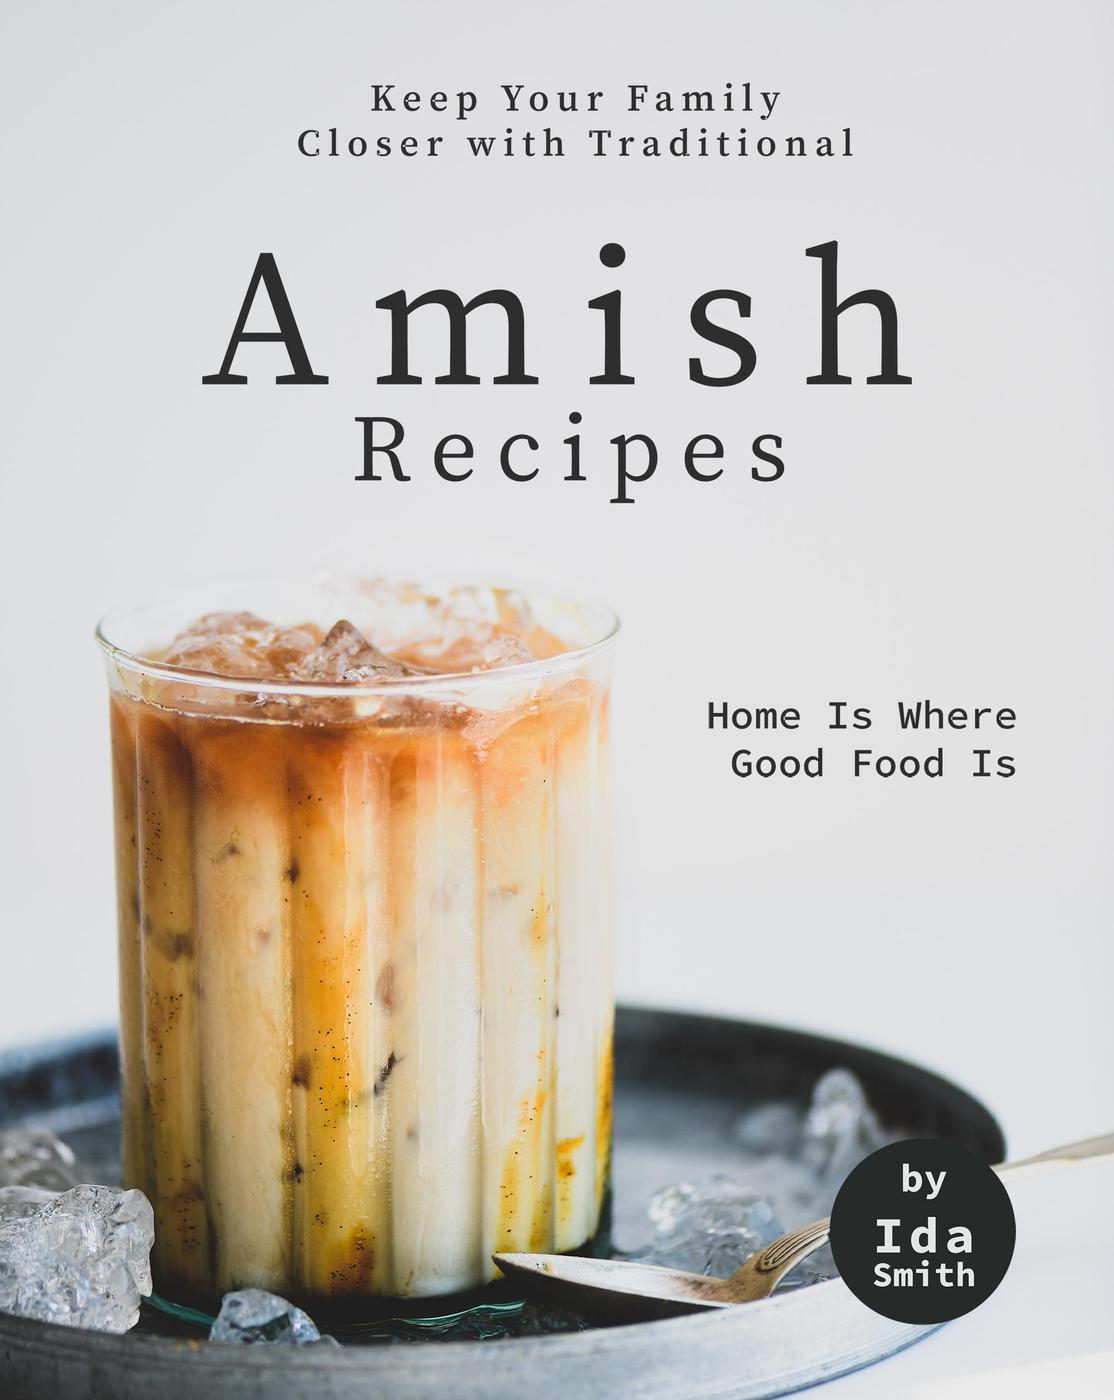 Keep Your Family Closer with Traditional Amish Recipes: Home Is Where Good Food Is